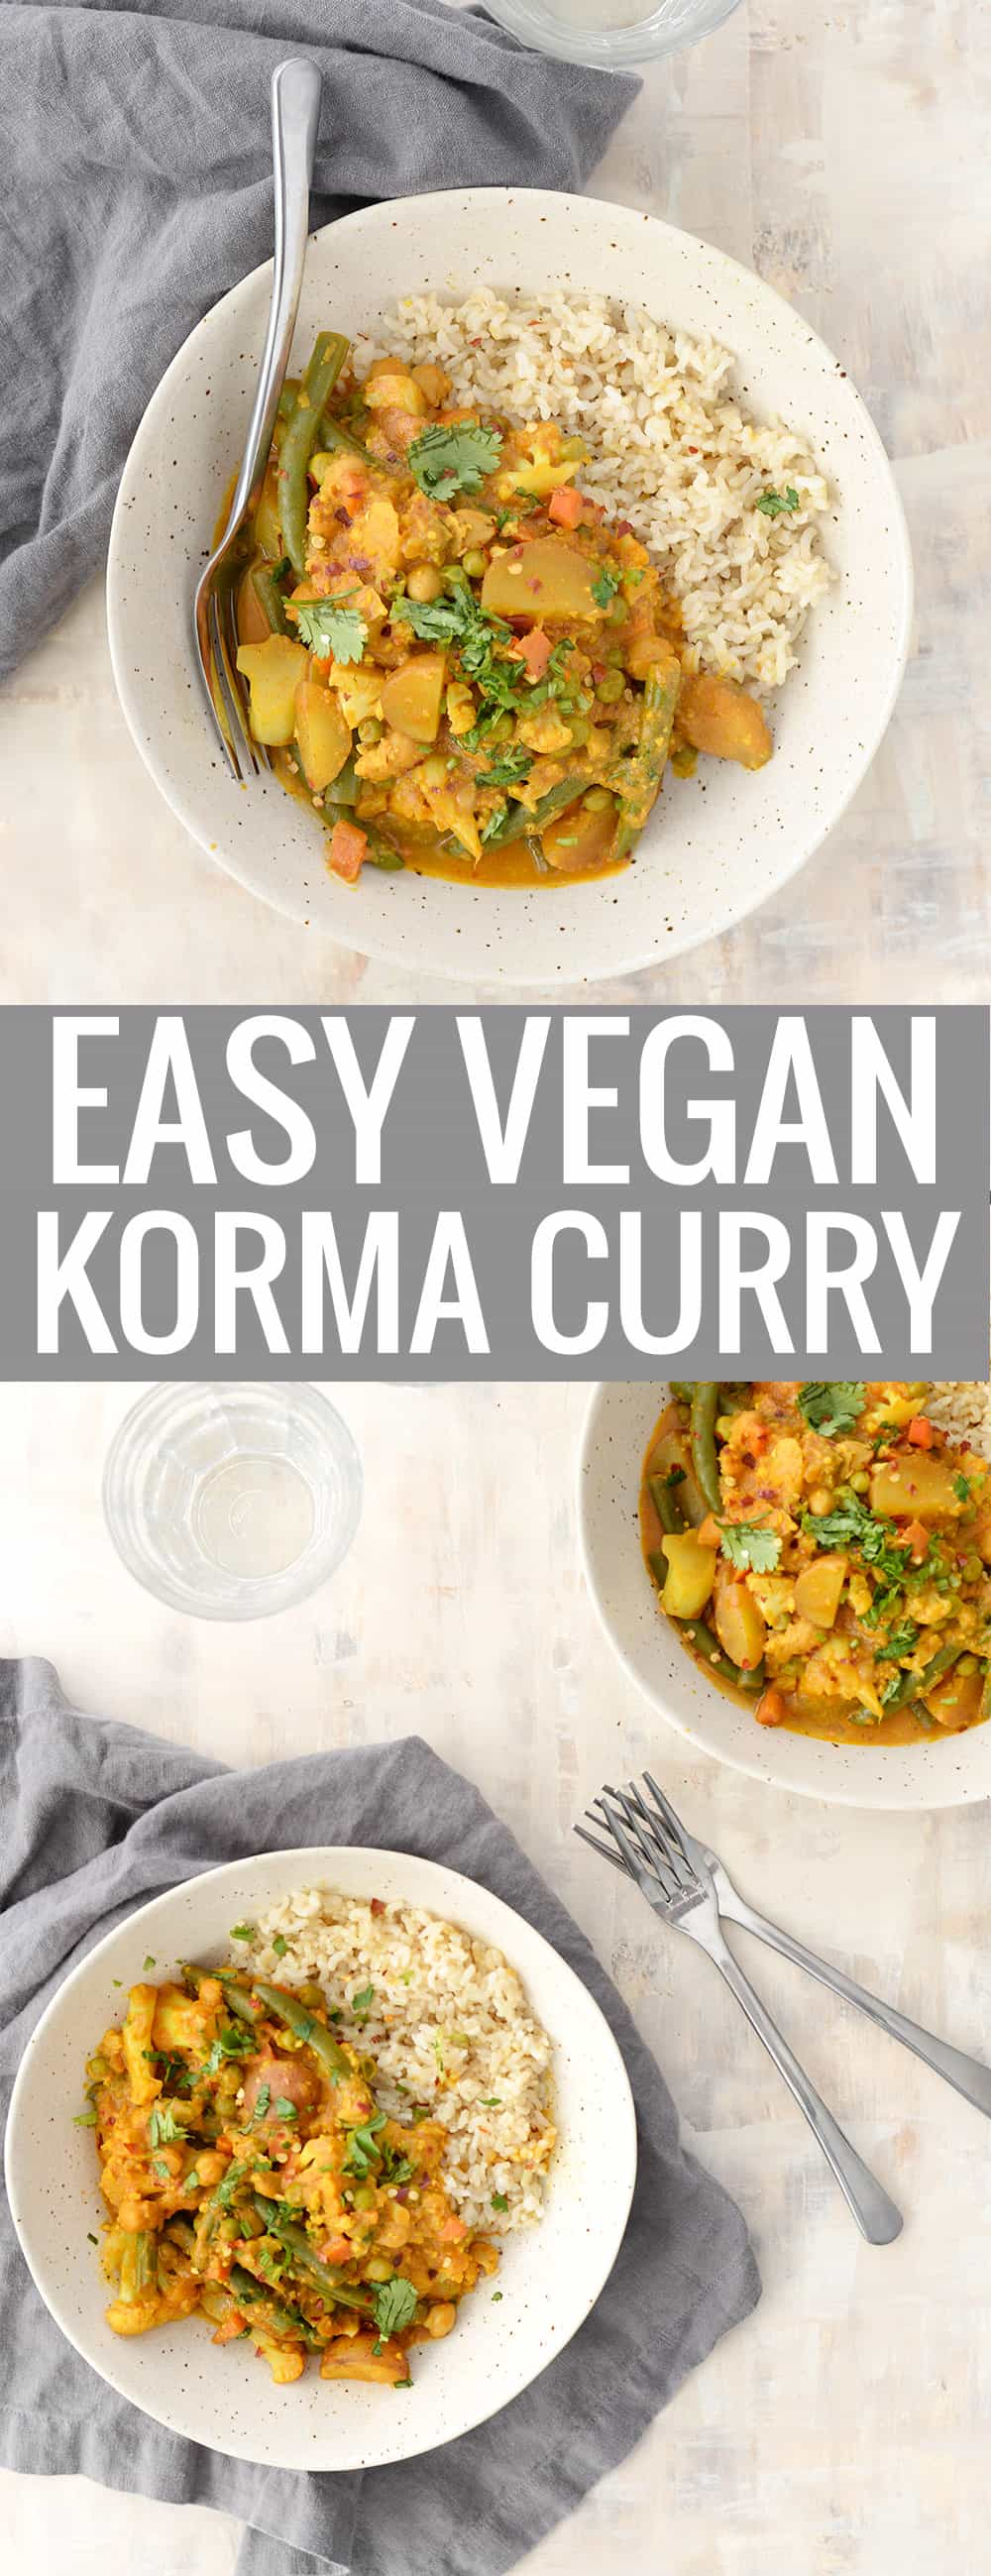 easy vegan korma